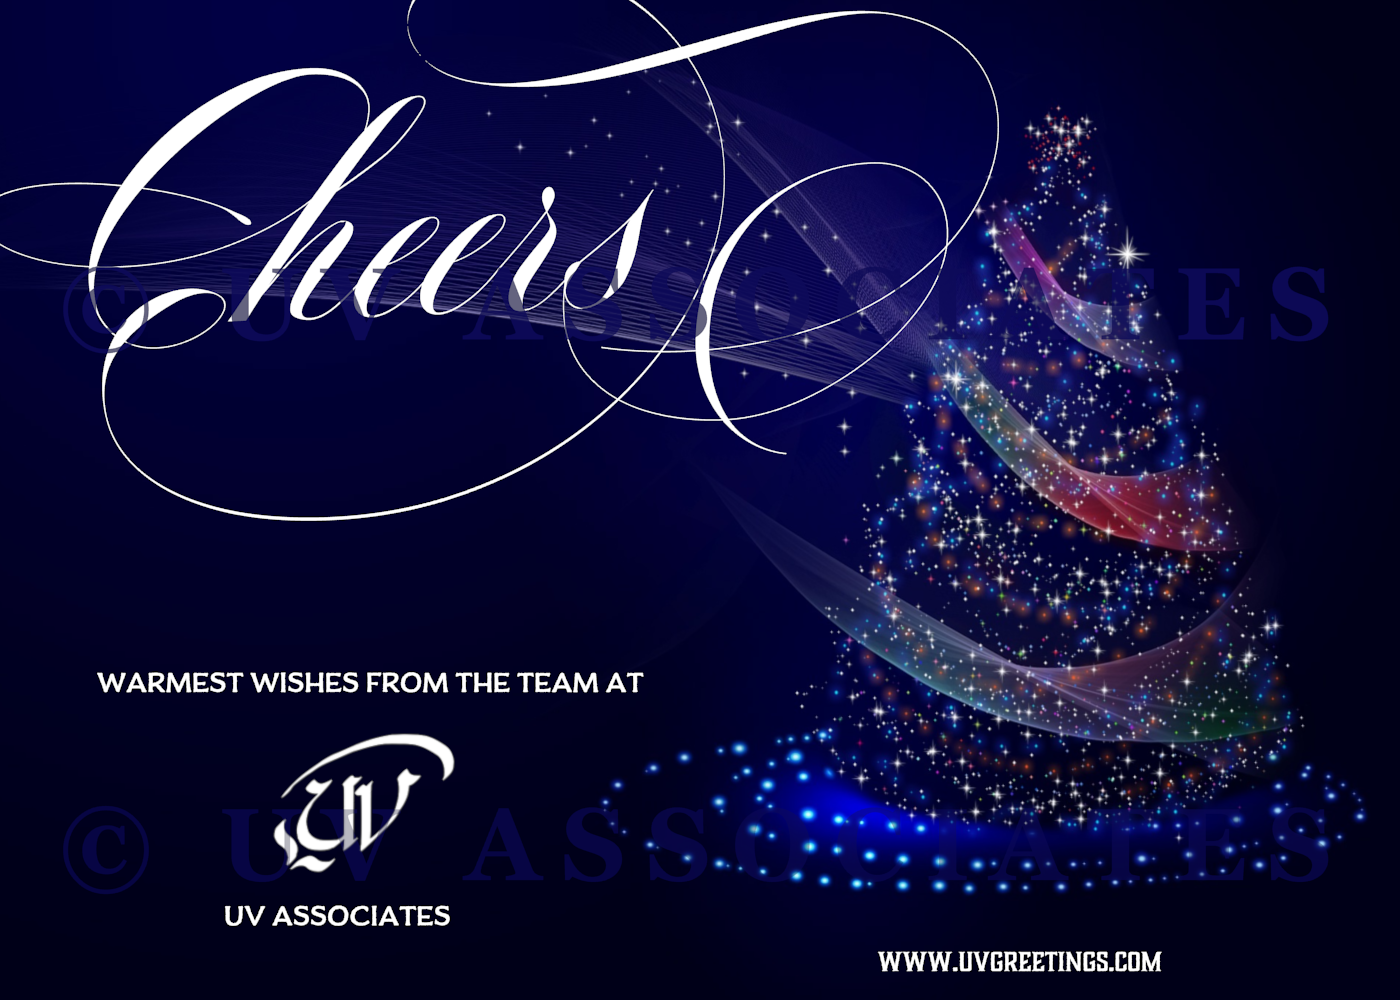 Cheers - Christmas Corporate Card Dark Blue background